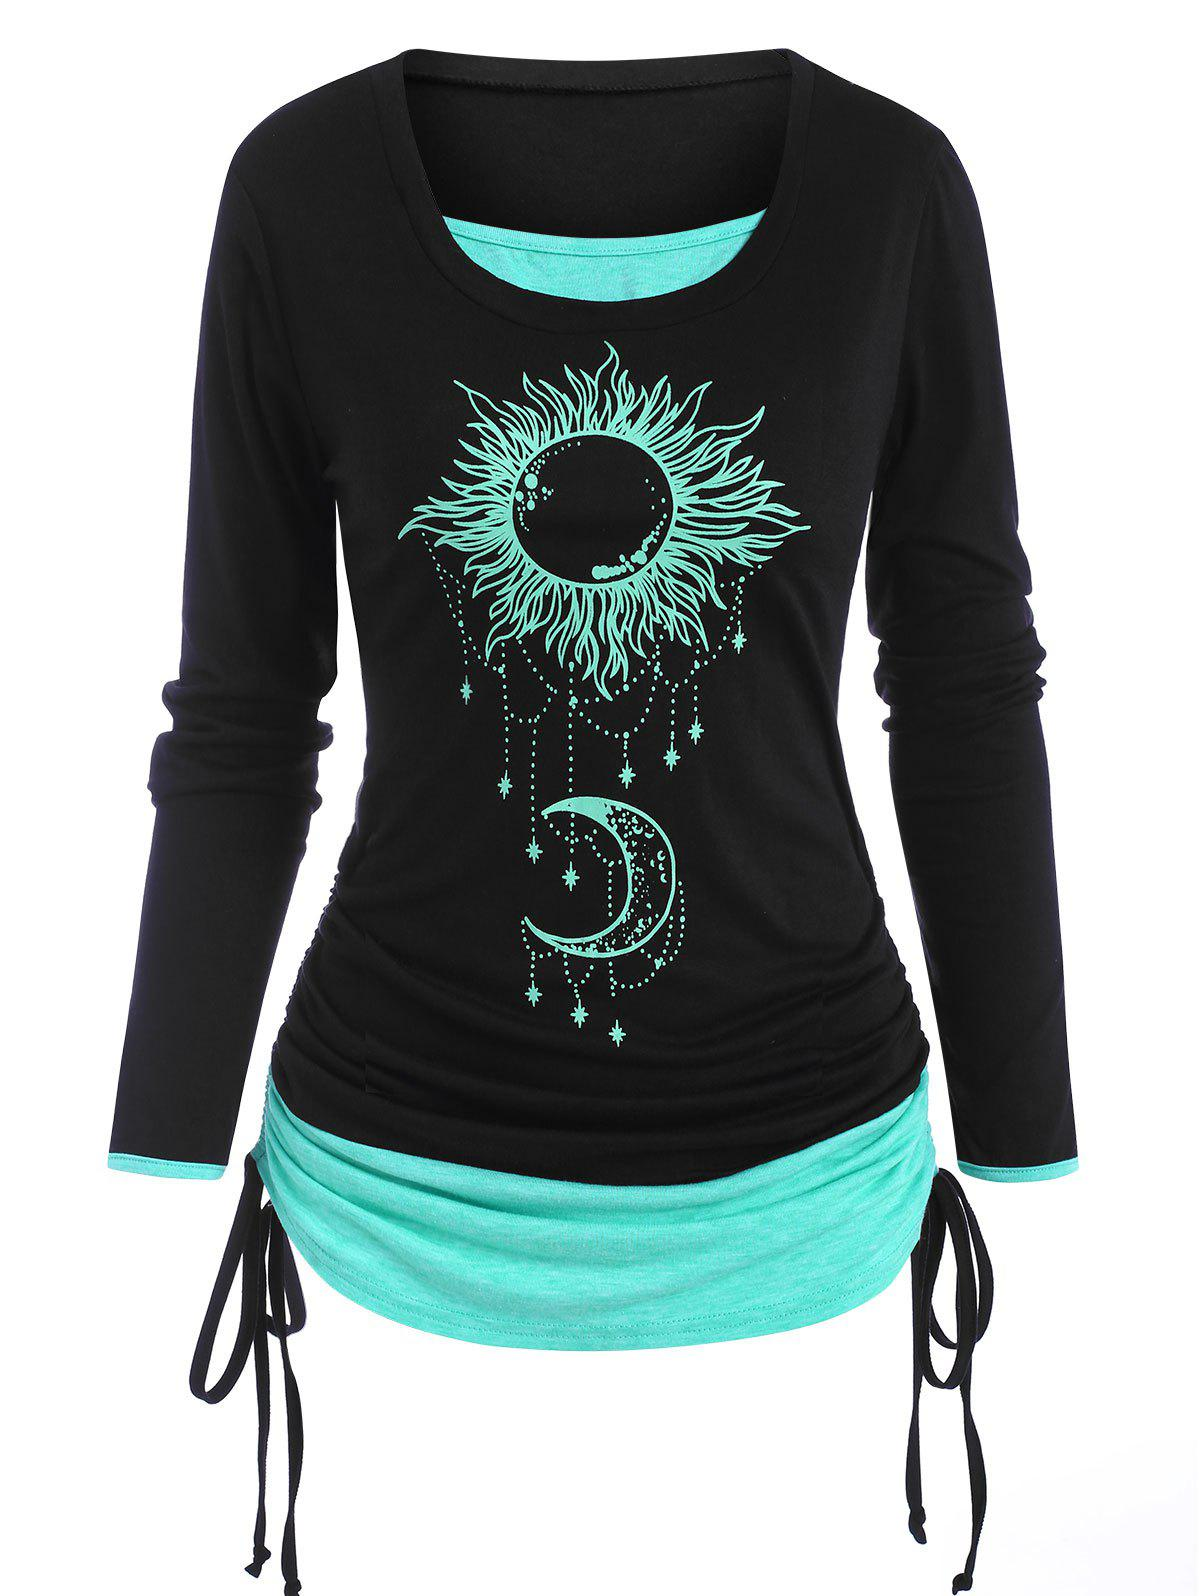 Discount Cinched Sun Moon Print 2 in 1 T Shirt